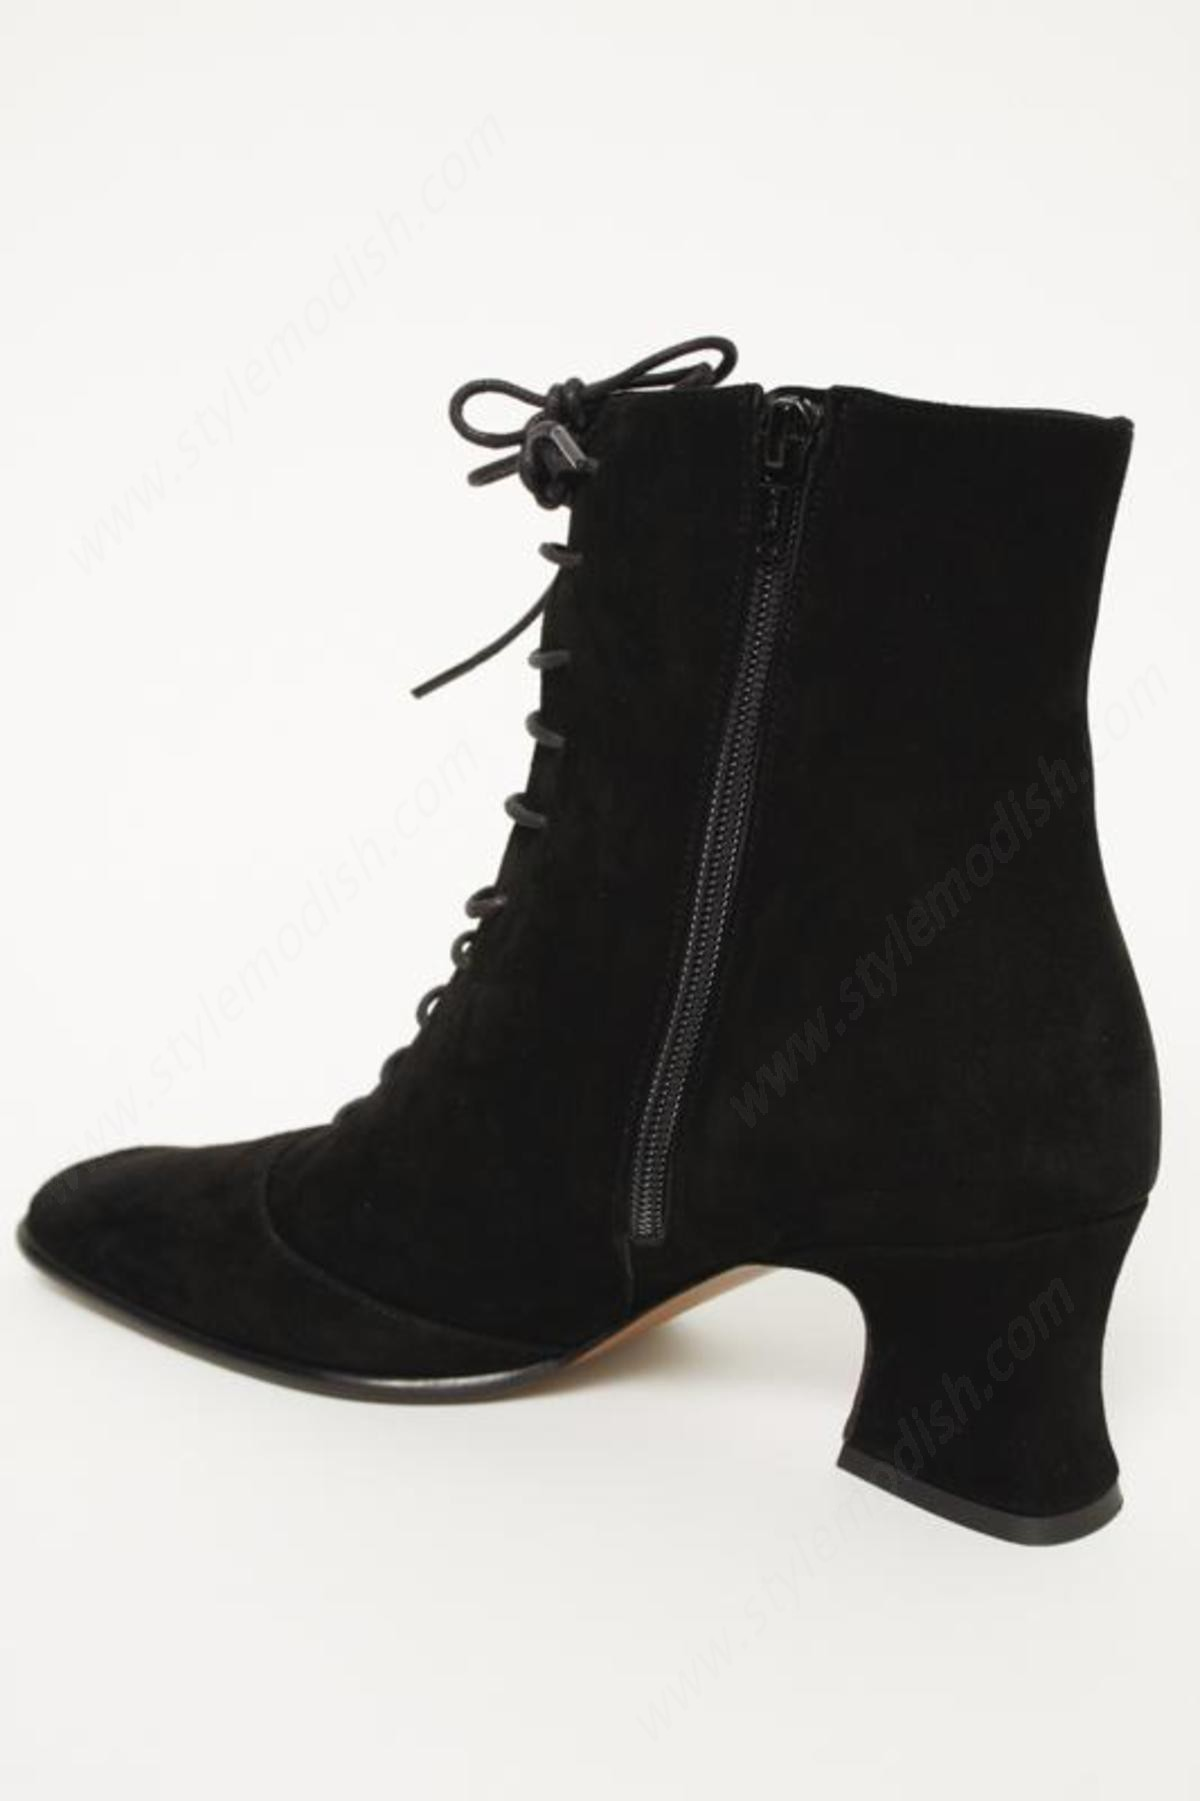 Women's By Far Kate Boot - Black - -4